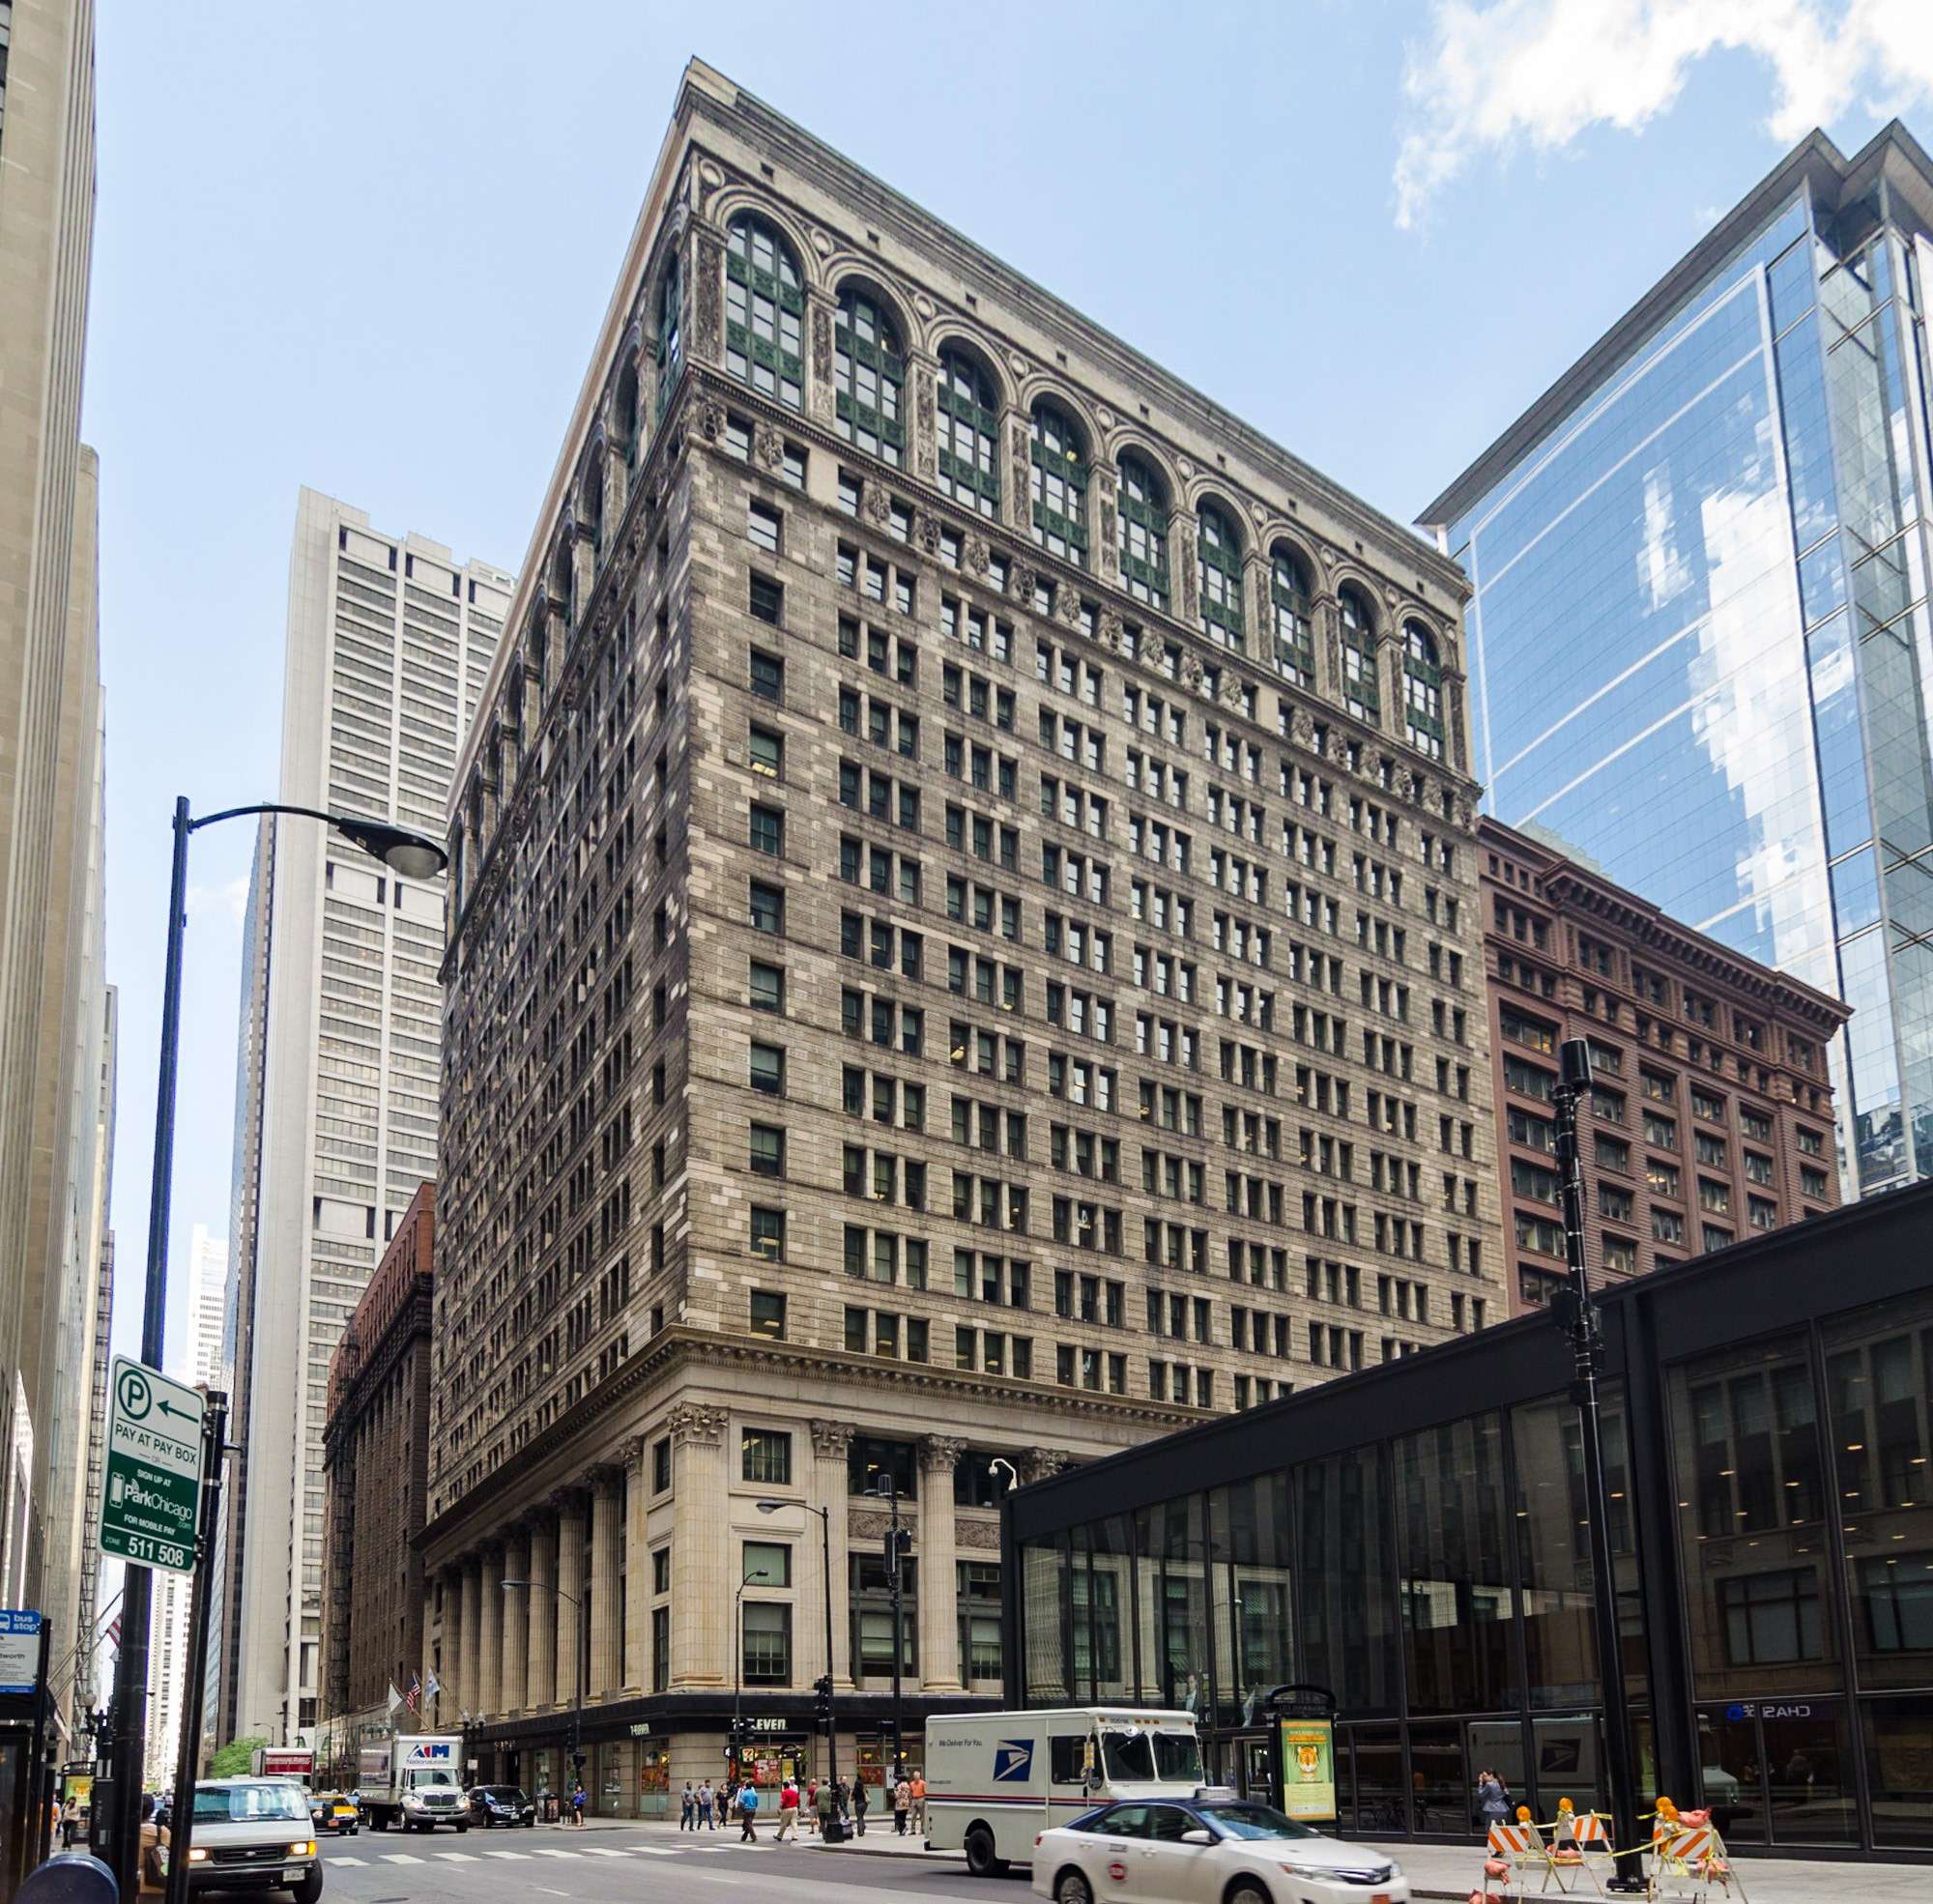 Downtown S Foreman Clark Building To Become 124: Revival Food Hall · Sites · Open House Chicago